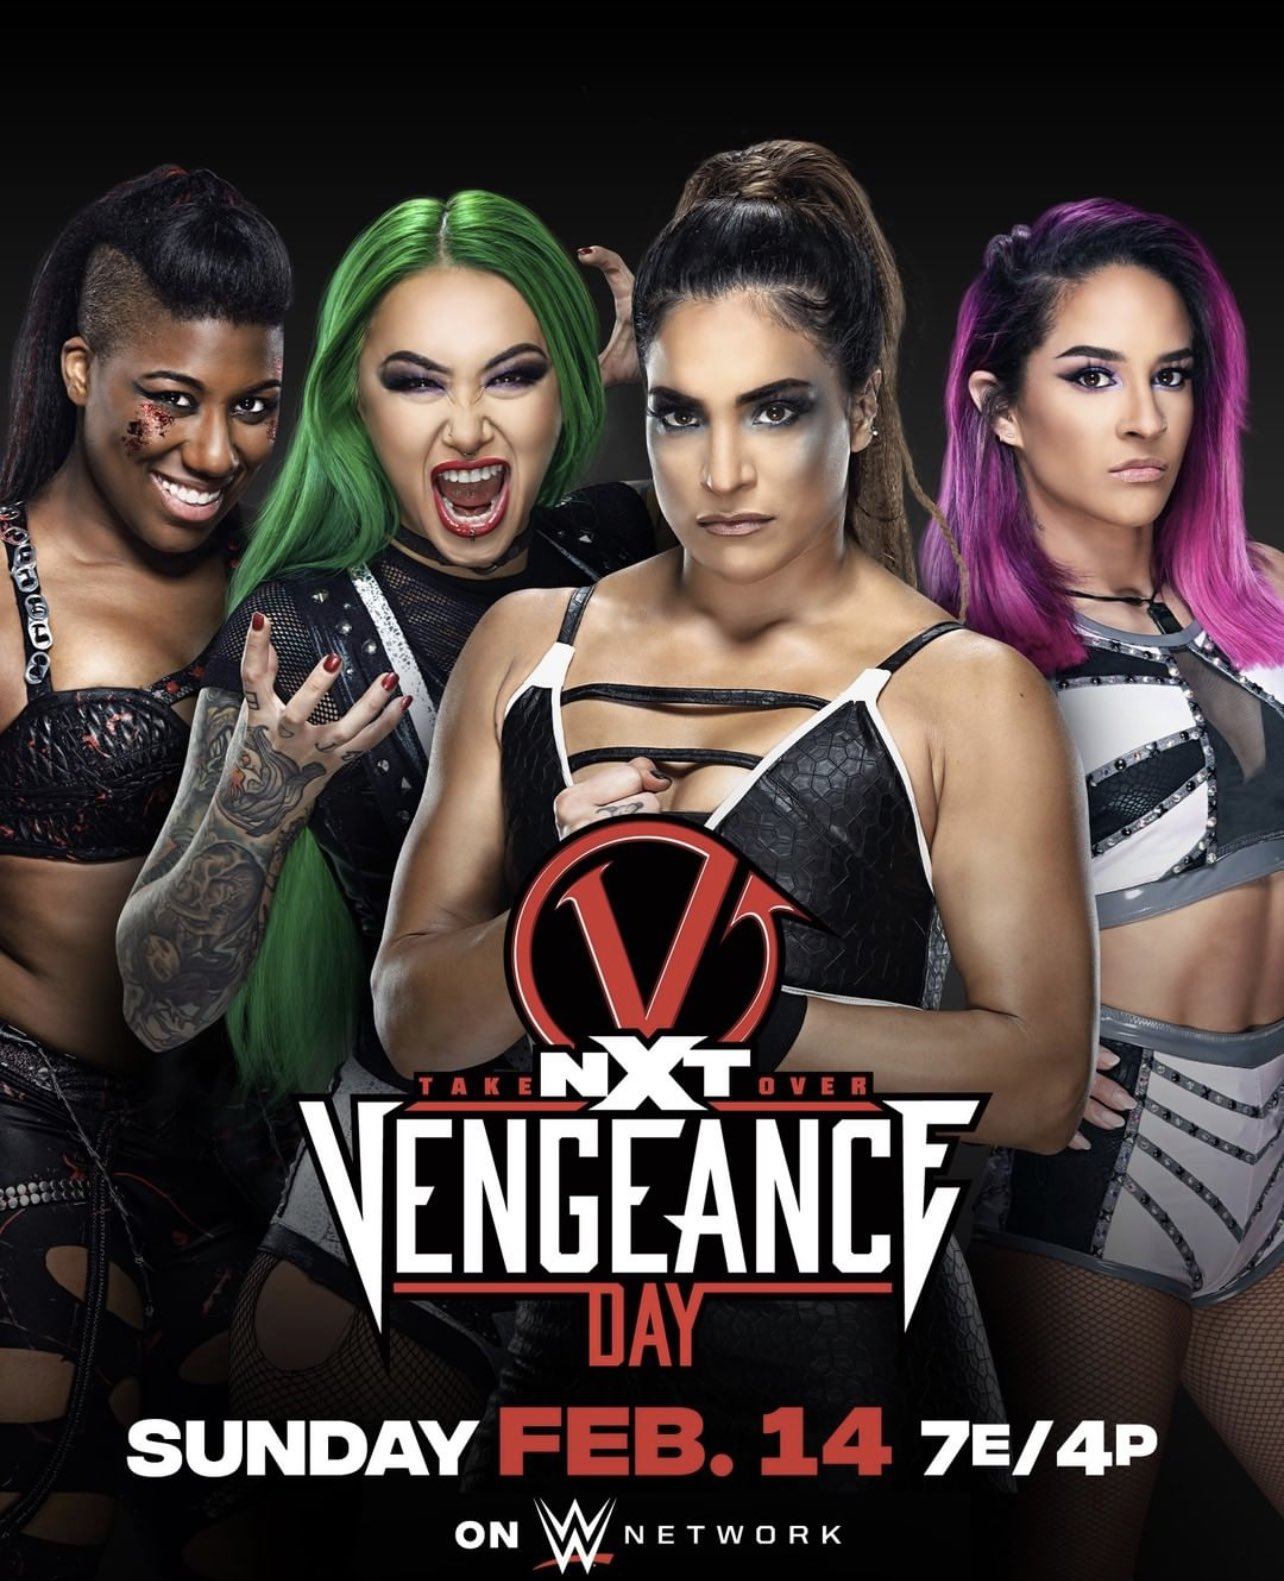 WWE NXT TakeOver Vengeance Day (14 February 2021) English 720p HDTV 1.8GB